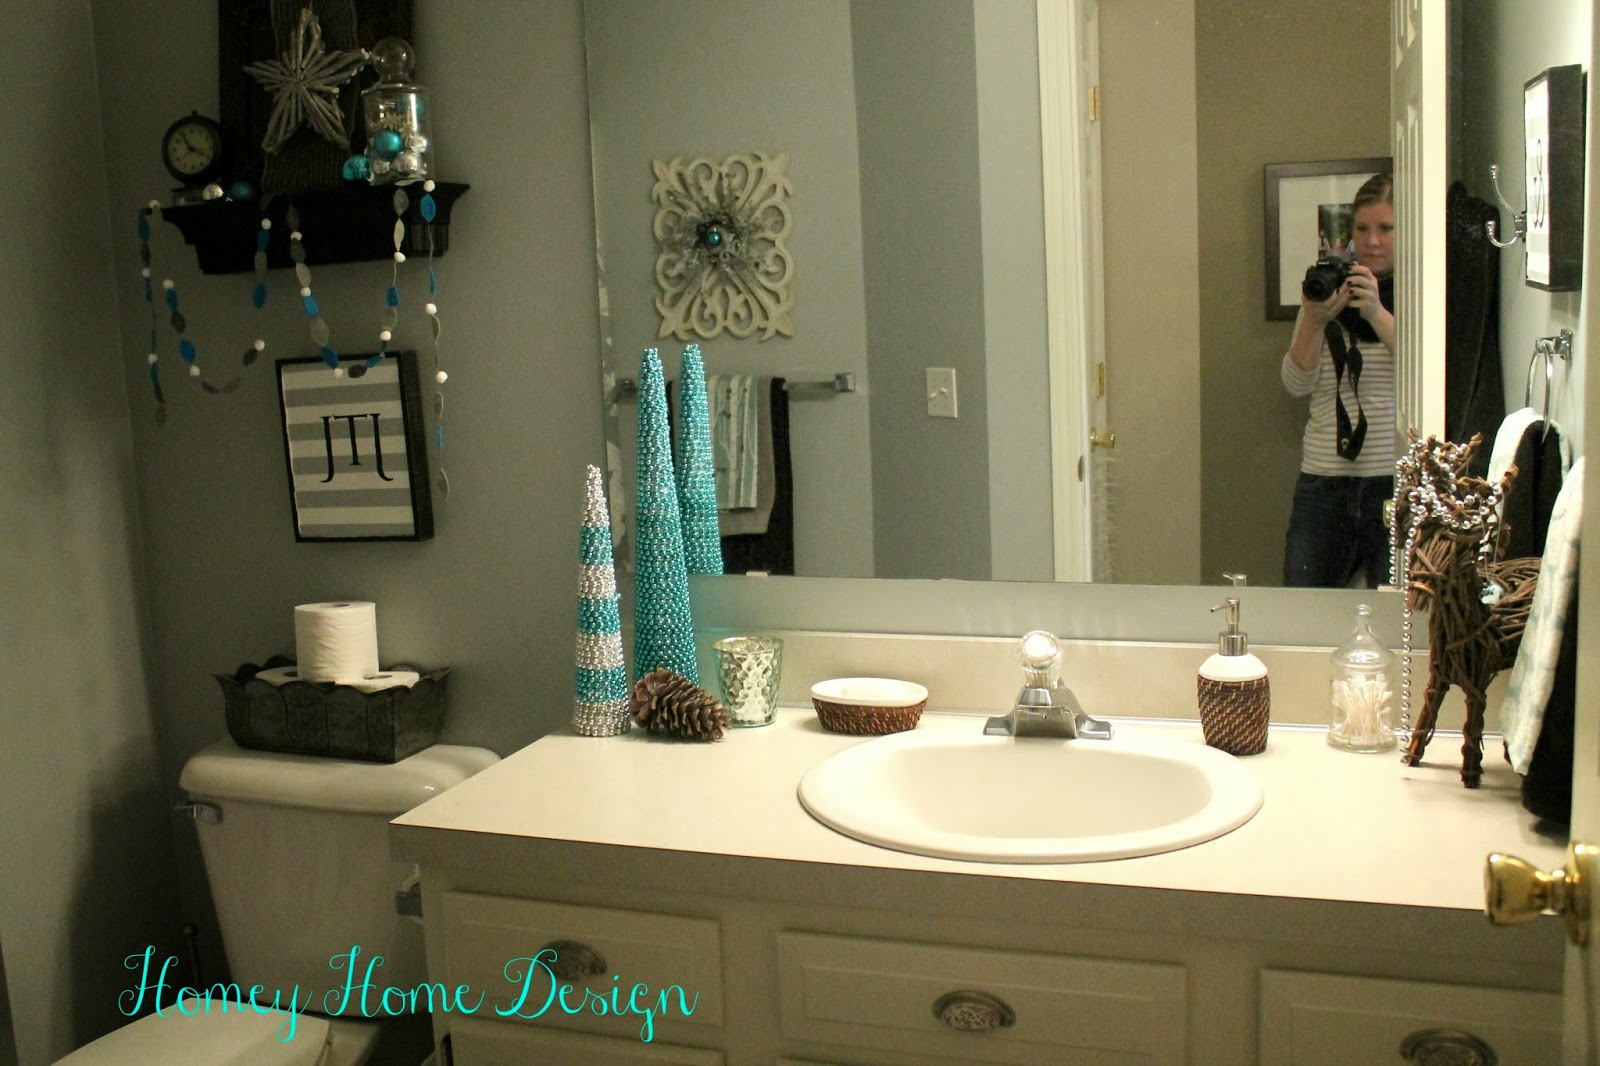 Homey home design bathroom christmas ideas for Bathroom decor pictures